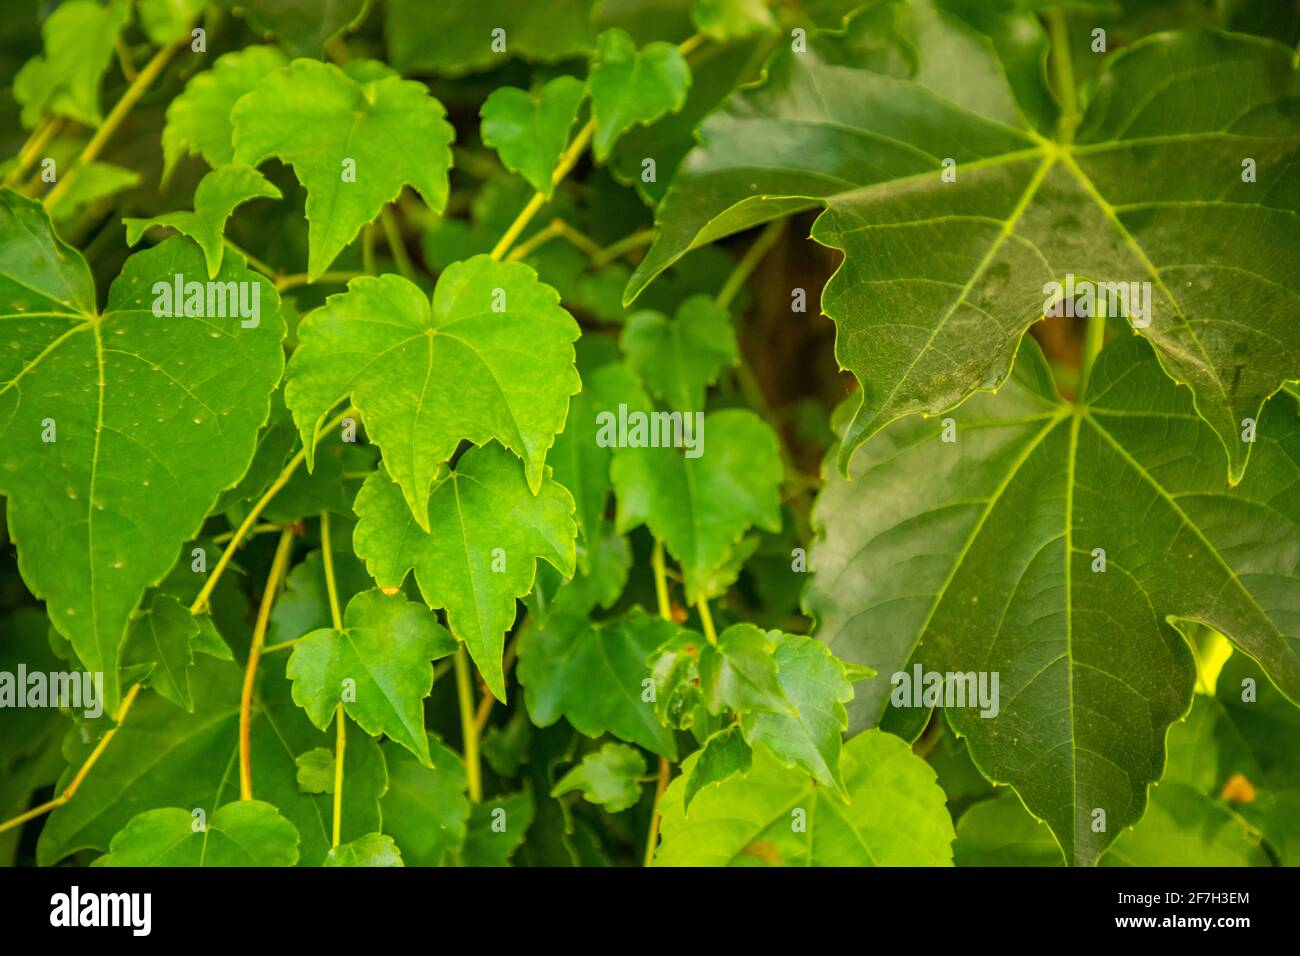 Many leafs of ivy cover wall, natural background Stock Photo